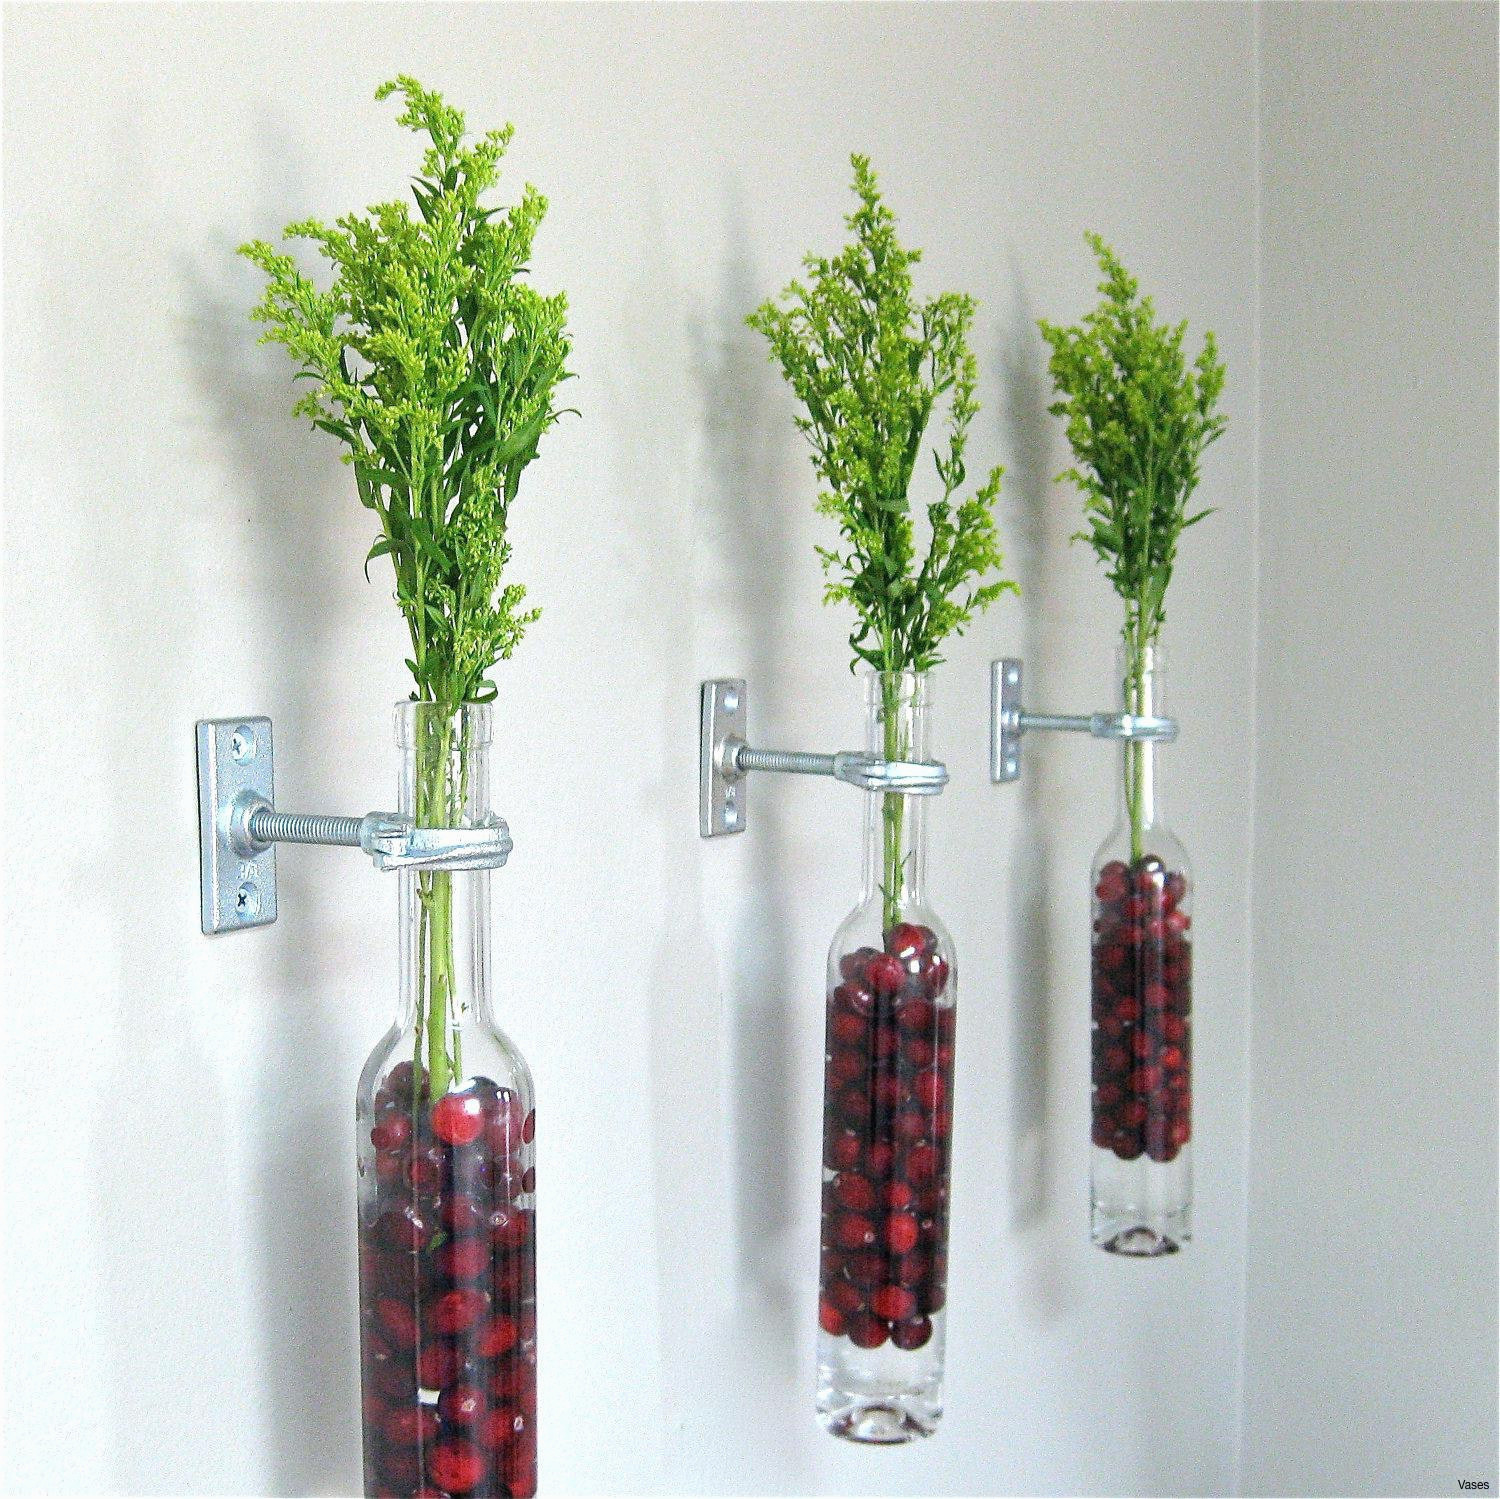 test tube flower vase rack of elegant ikea vases spring 2h hanging these white skurar lanterns i inside elegant ikea vases spring 2h hanging these white skurar lanterns i 0d design of elegant ikea